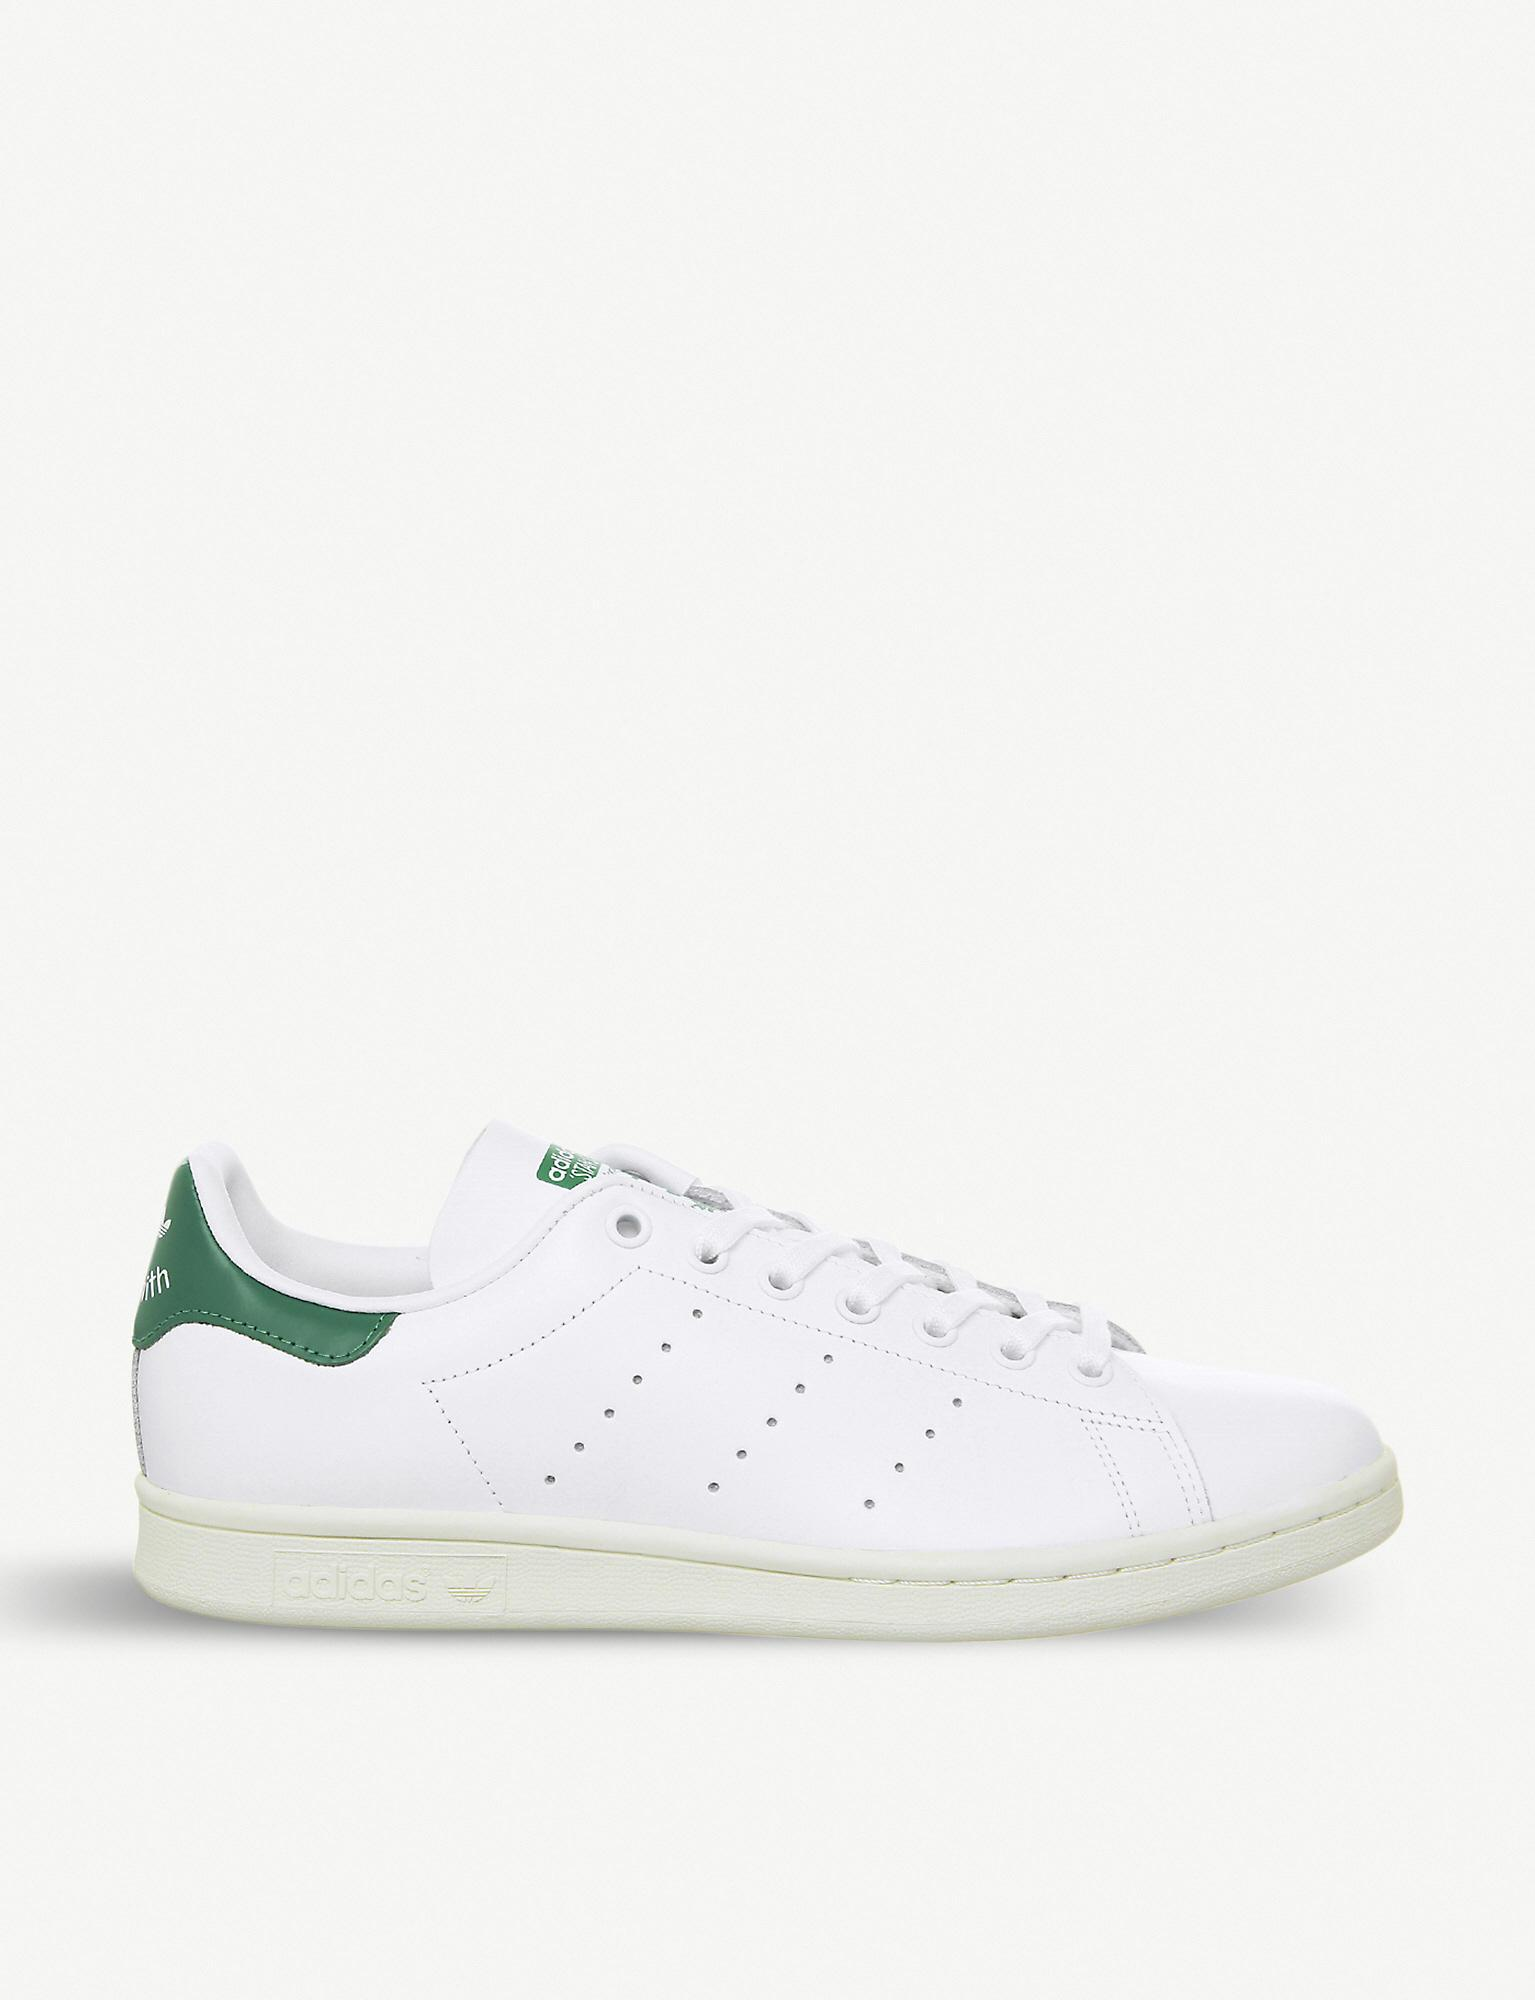 83d30c4bc4ab adidas Stan Smith Leather Trainers in White for Men - Save 50% - Lyst